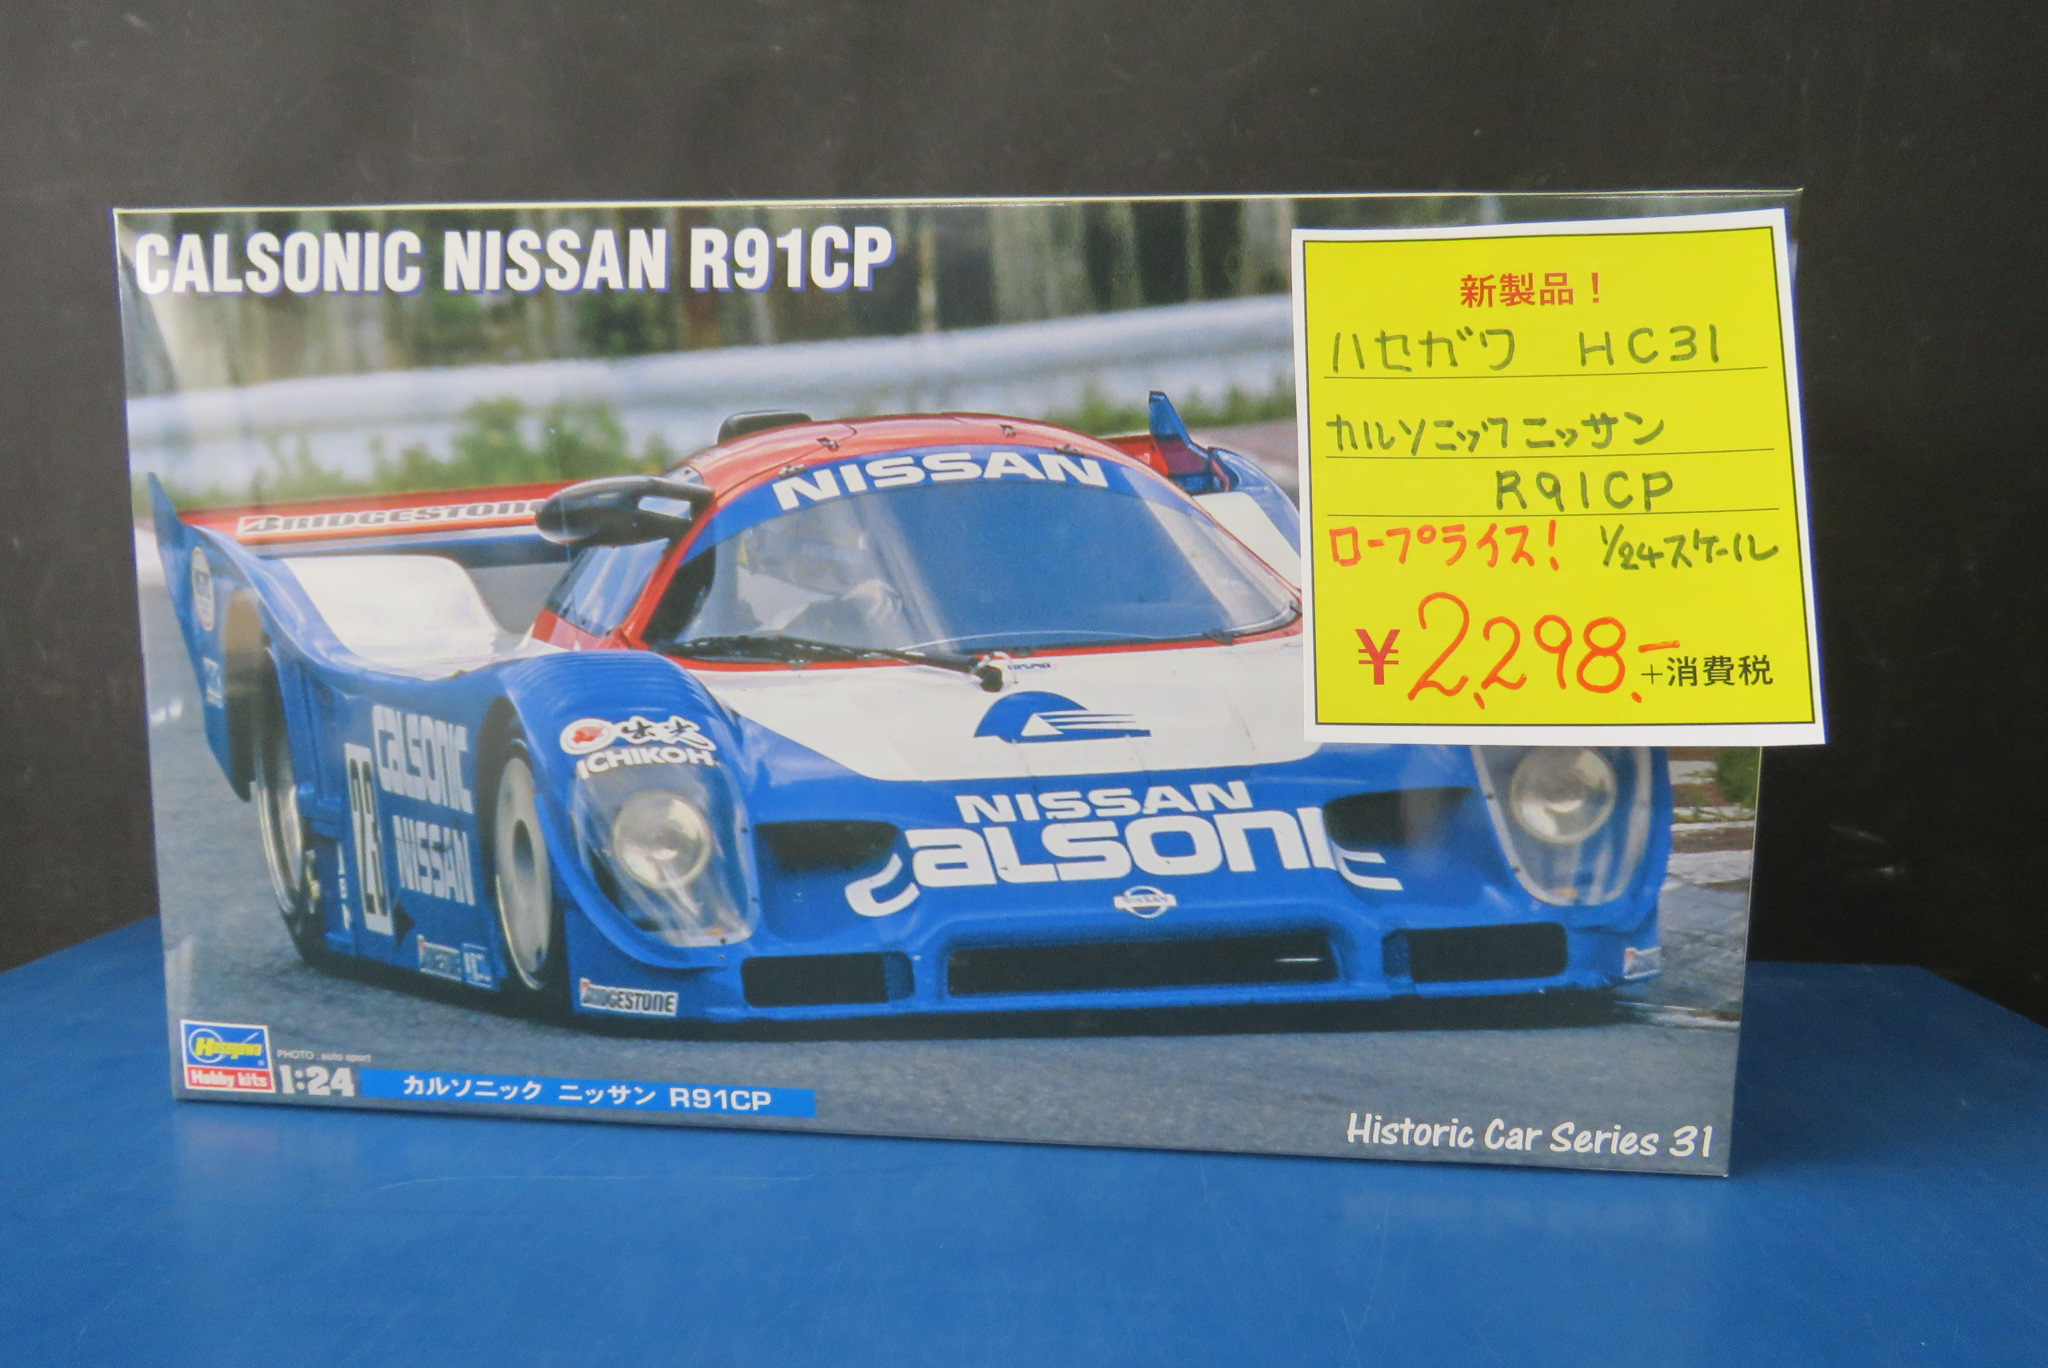 new from hasegawa Plastic model New mold 1/24 Calsonic